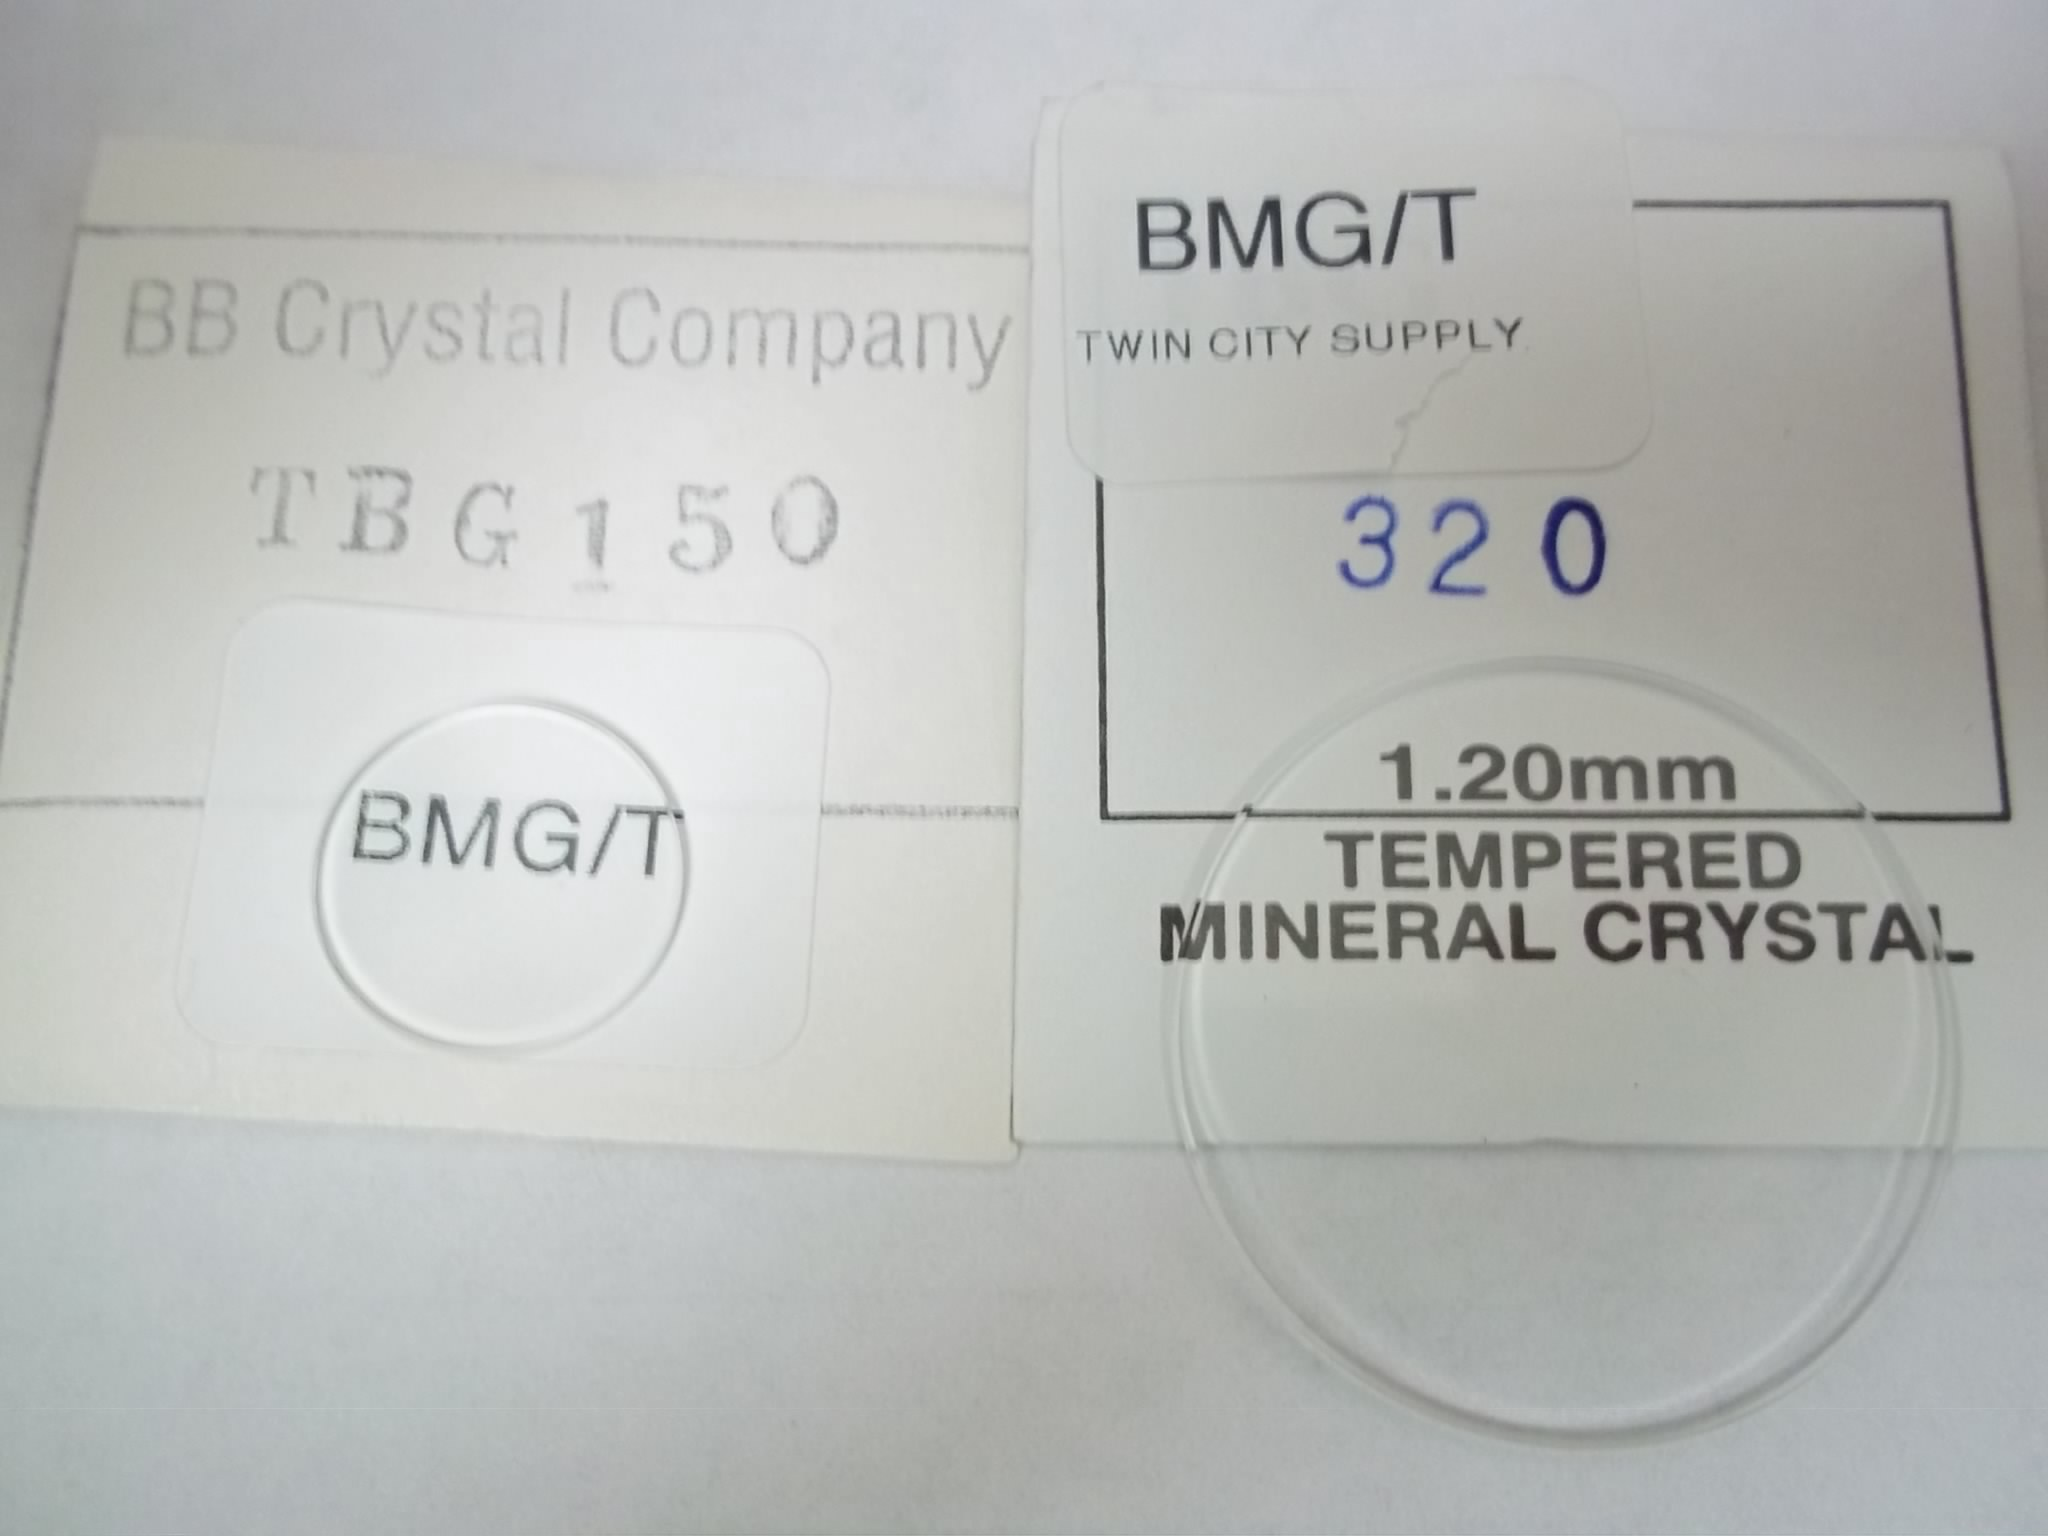 BMG/T 15.0 to 32.0 Round flat Mineral Glass Crystals 1.2 MM Thick Polished beveled edges